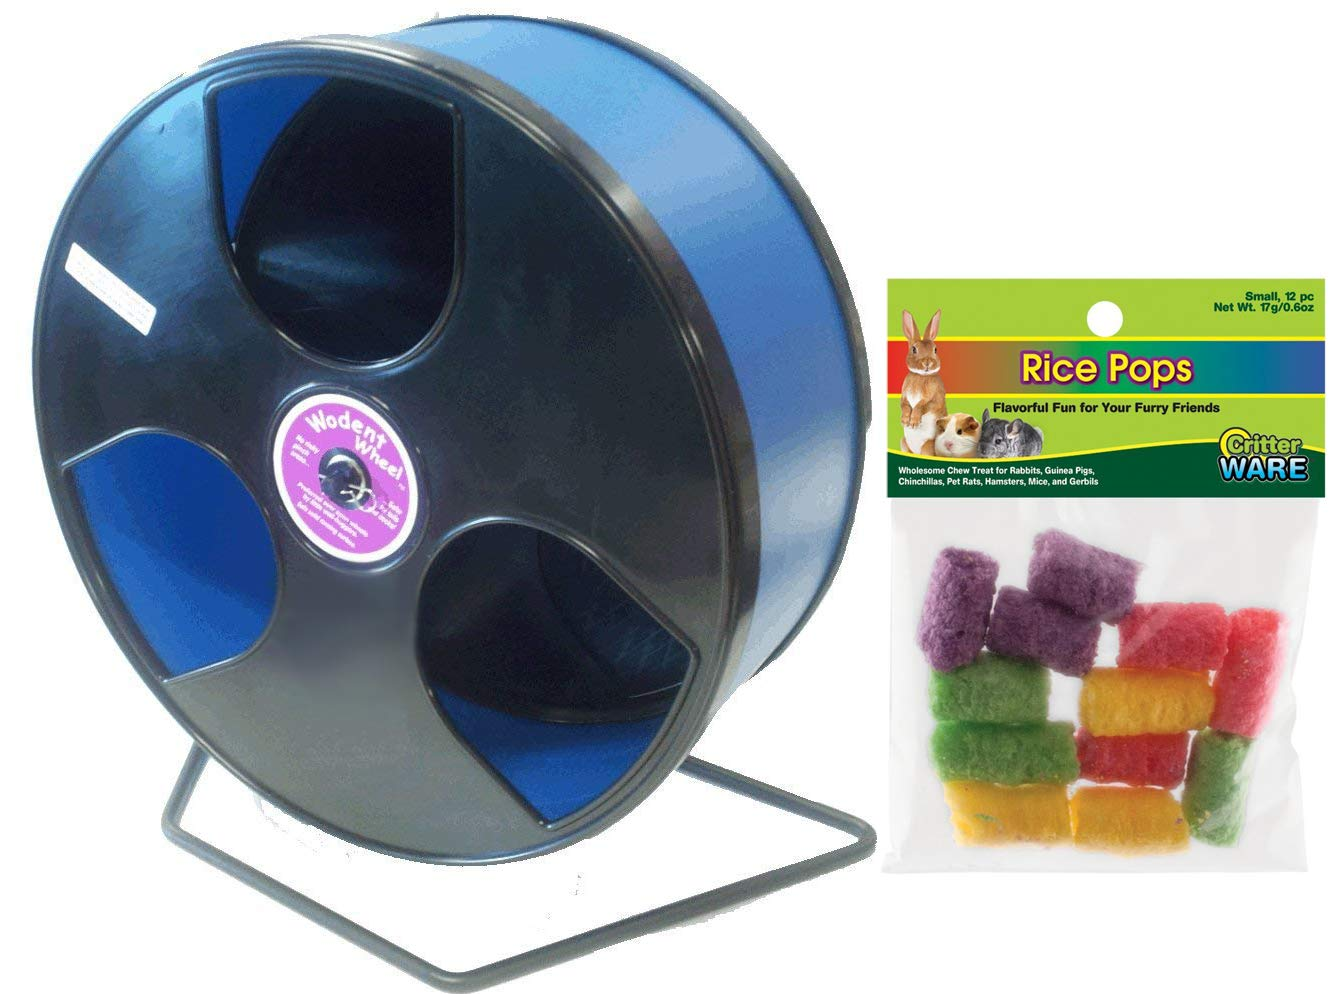 Wodent Wheel 12 Inch: Transoniq Wobust Wodent Wheel Bundle with Ware Rice Pops Treat: Black with Blue Track by CritterTyme (Image #1)